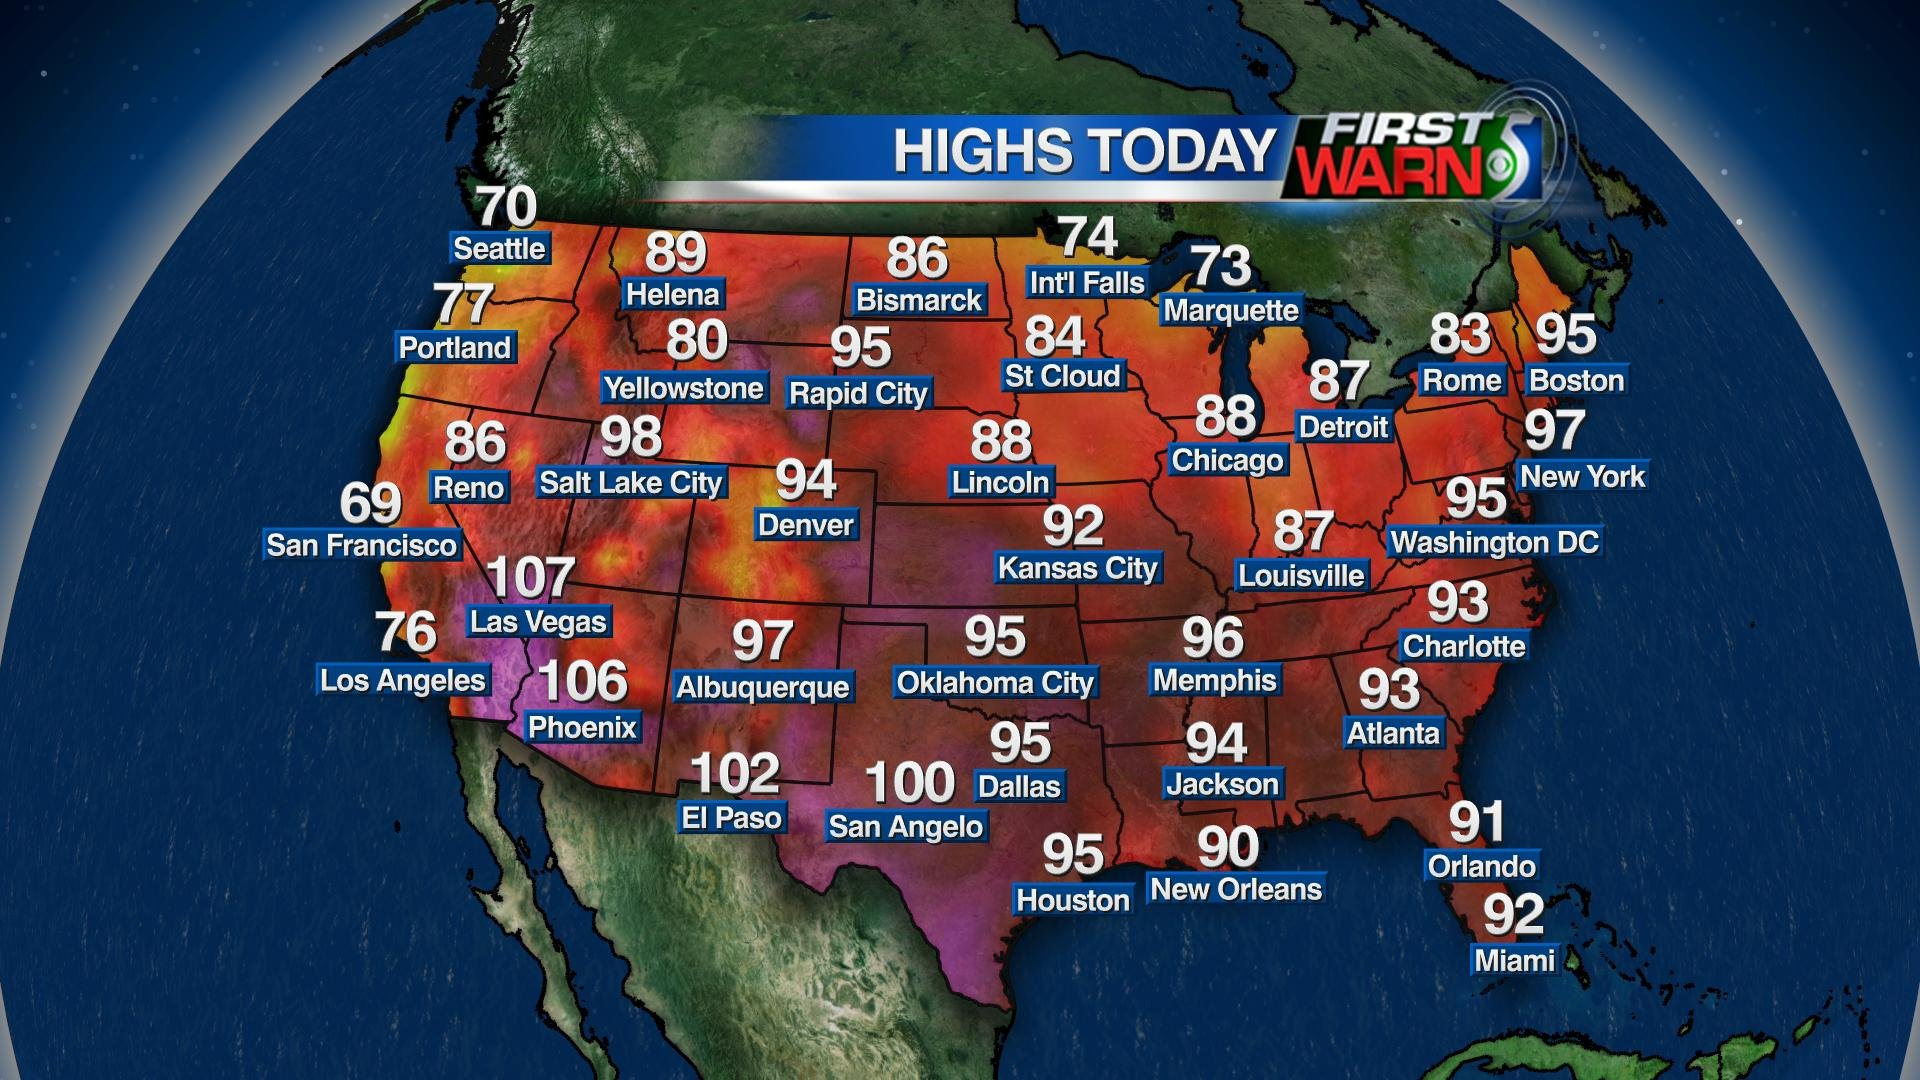 High Temperatures - Monday, July 18, 2016